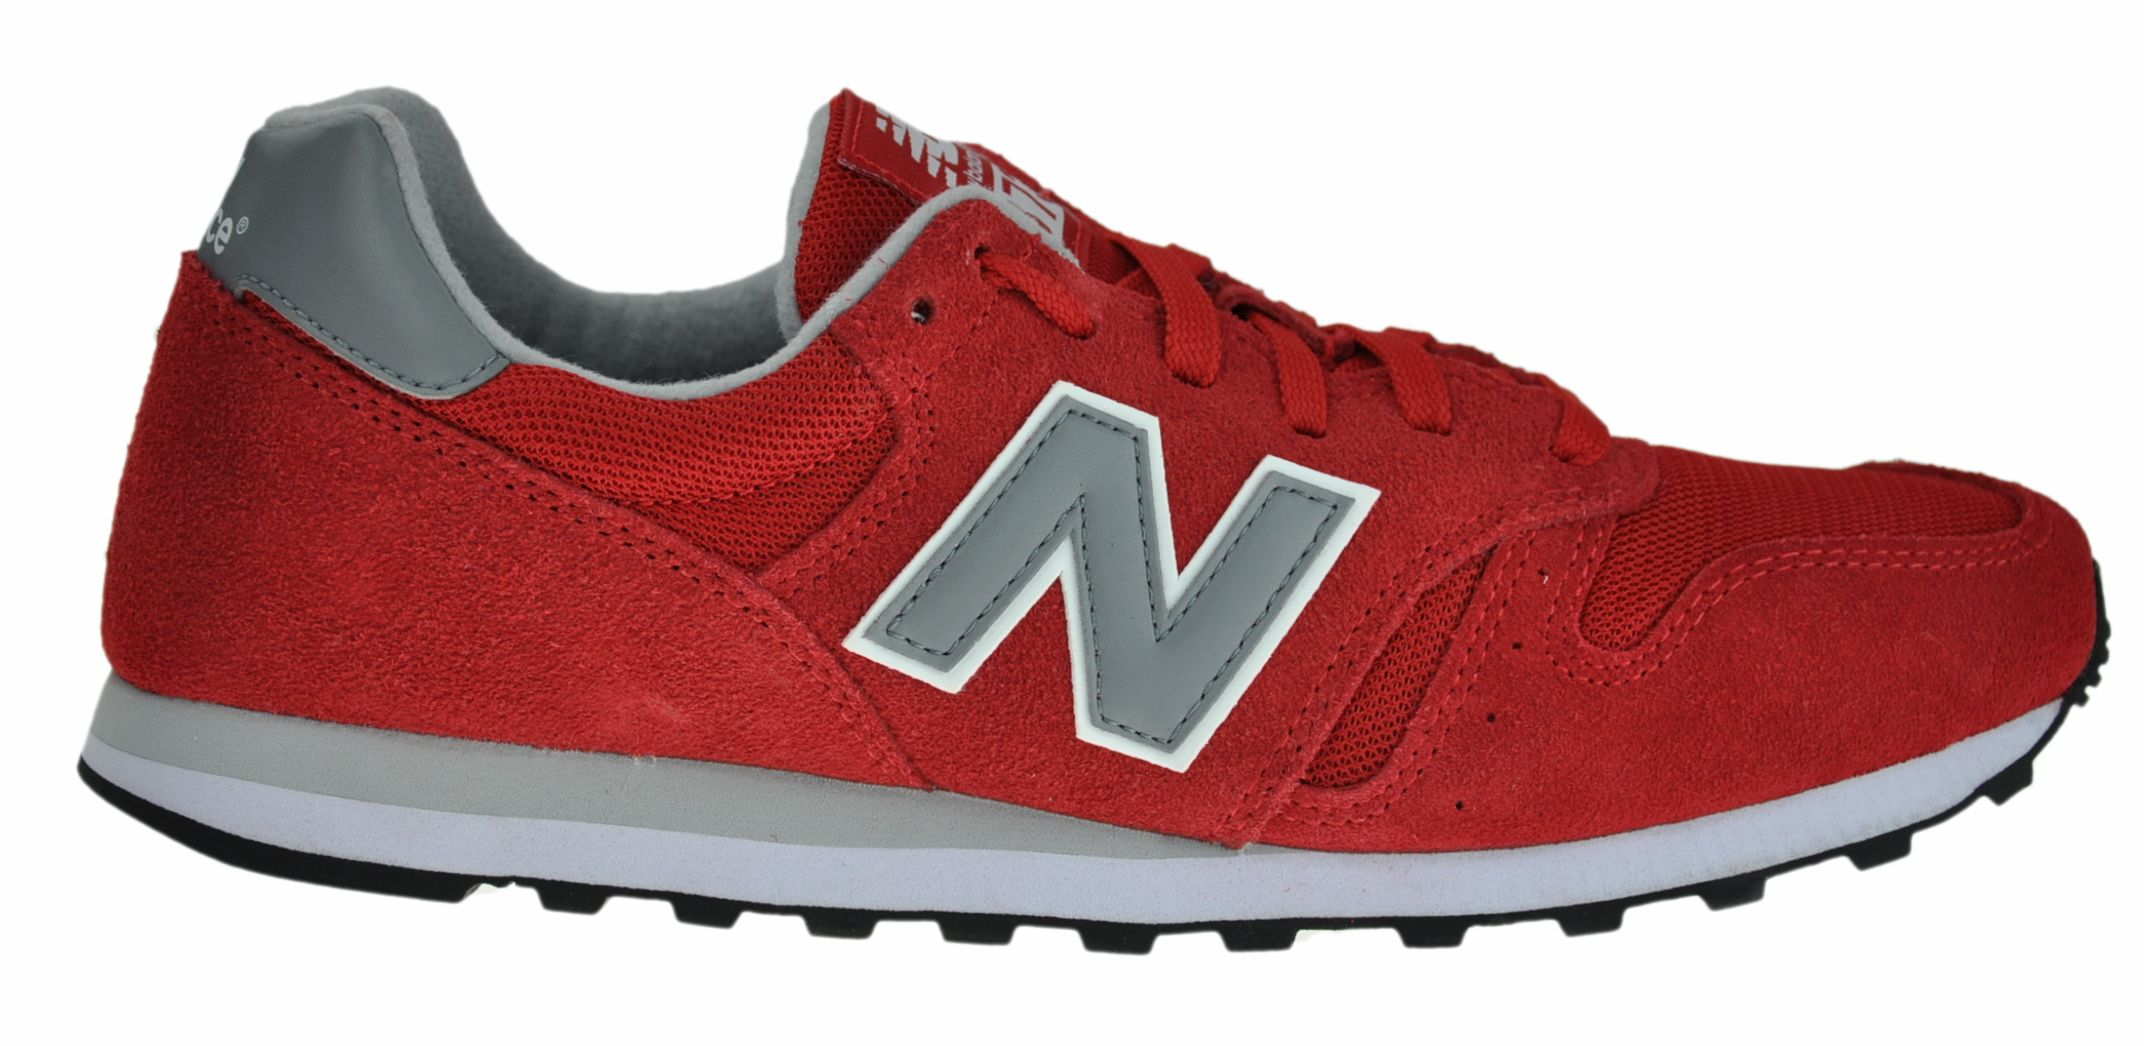 c7ea2c17 BUTY NEW BALANCE ML373HR r. 44 SALE !!! - 7247580303 - oficjalne ...